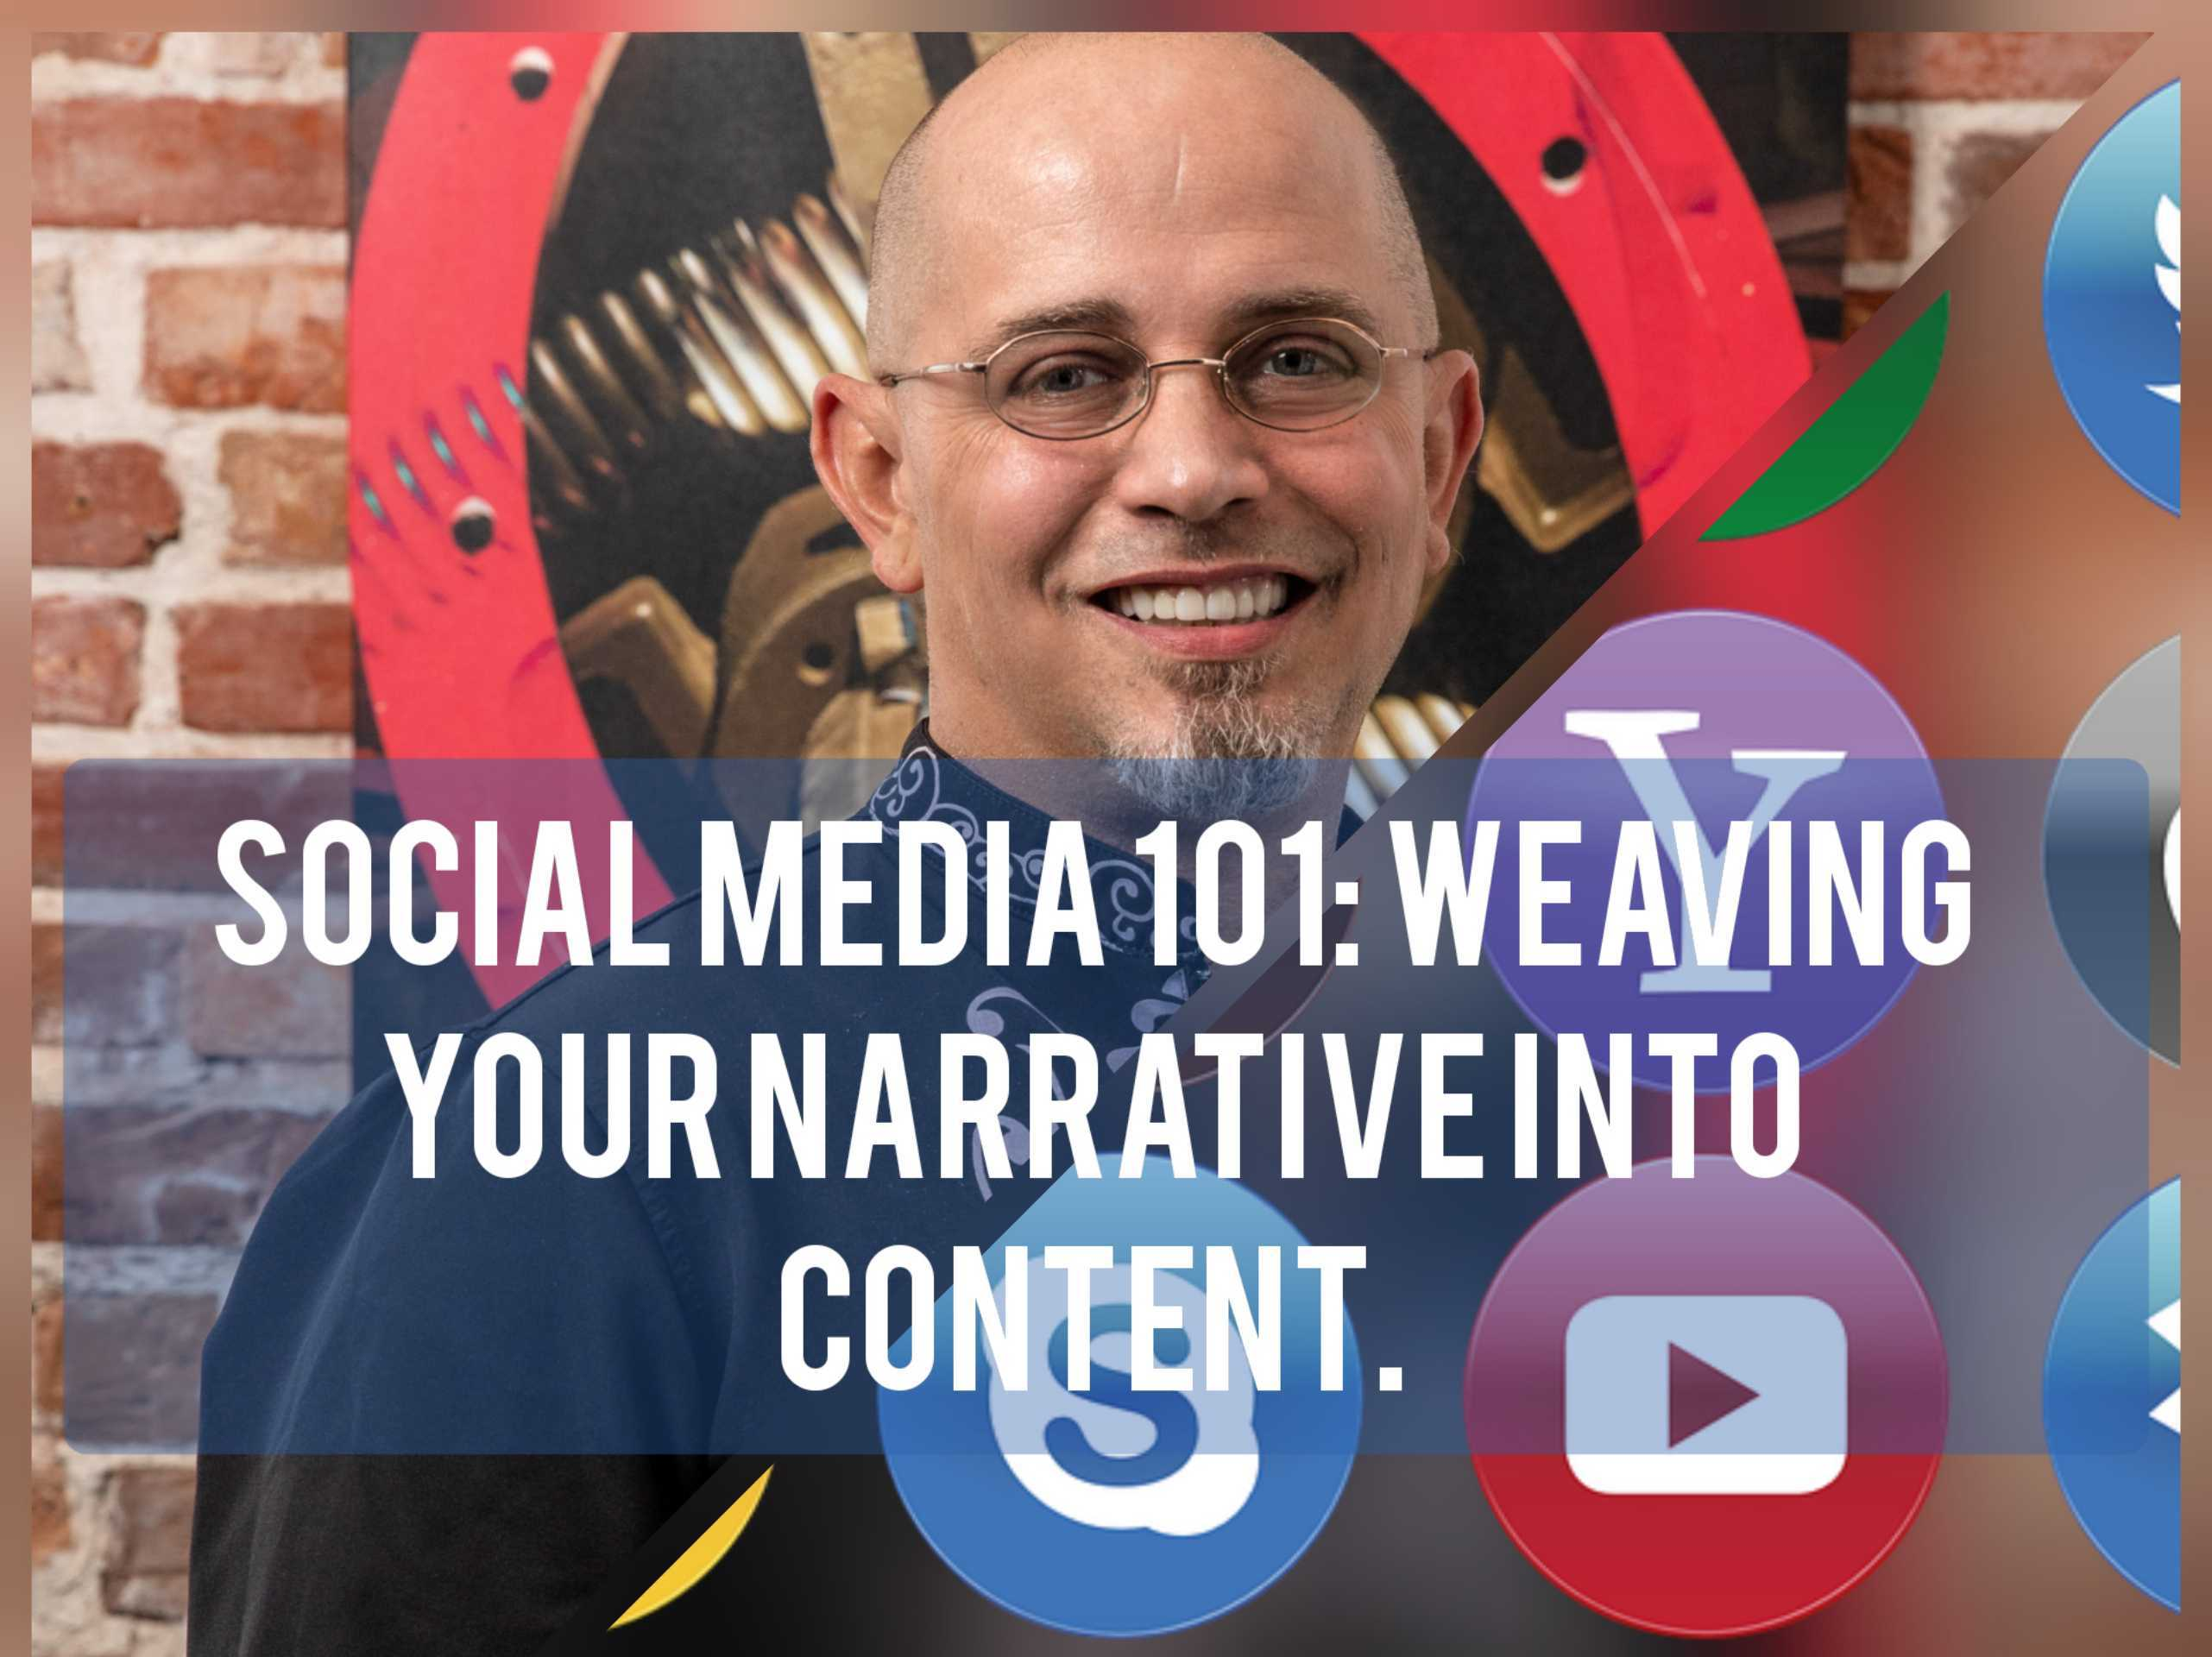 Social Media 101 - Weaving Your Narrative Into Content